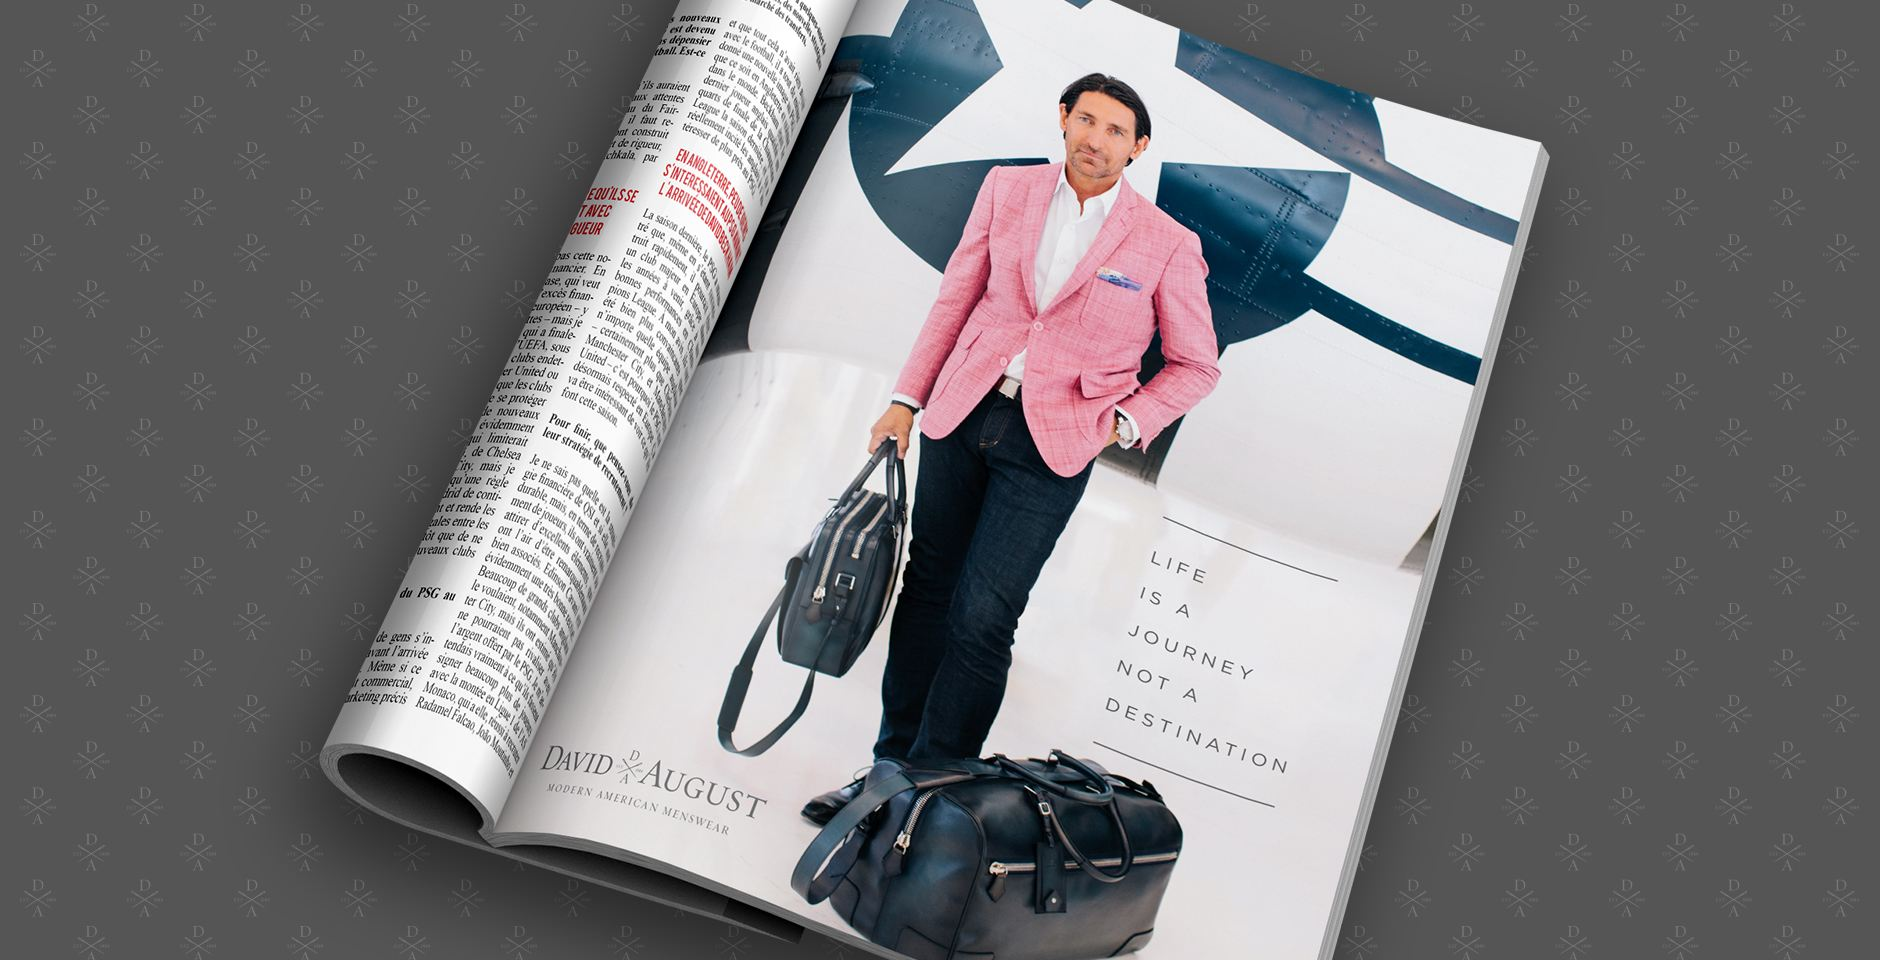 david august print ad magazine campaign lyon air museum pink jacket